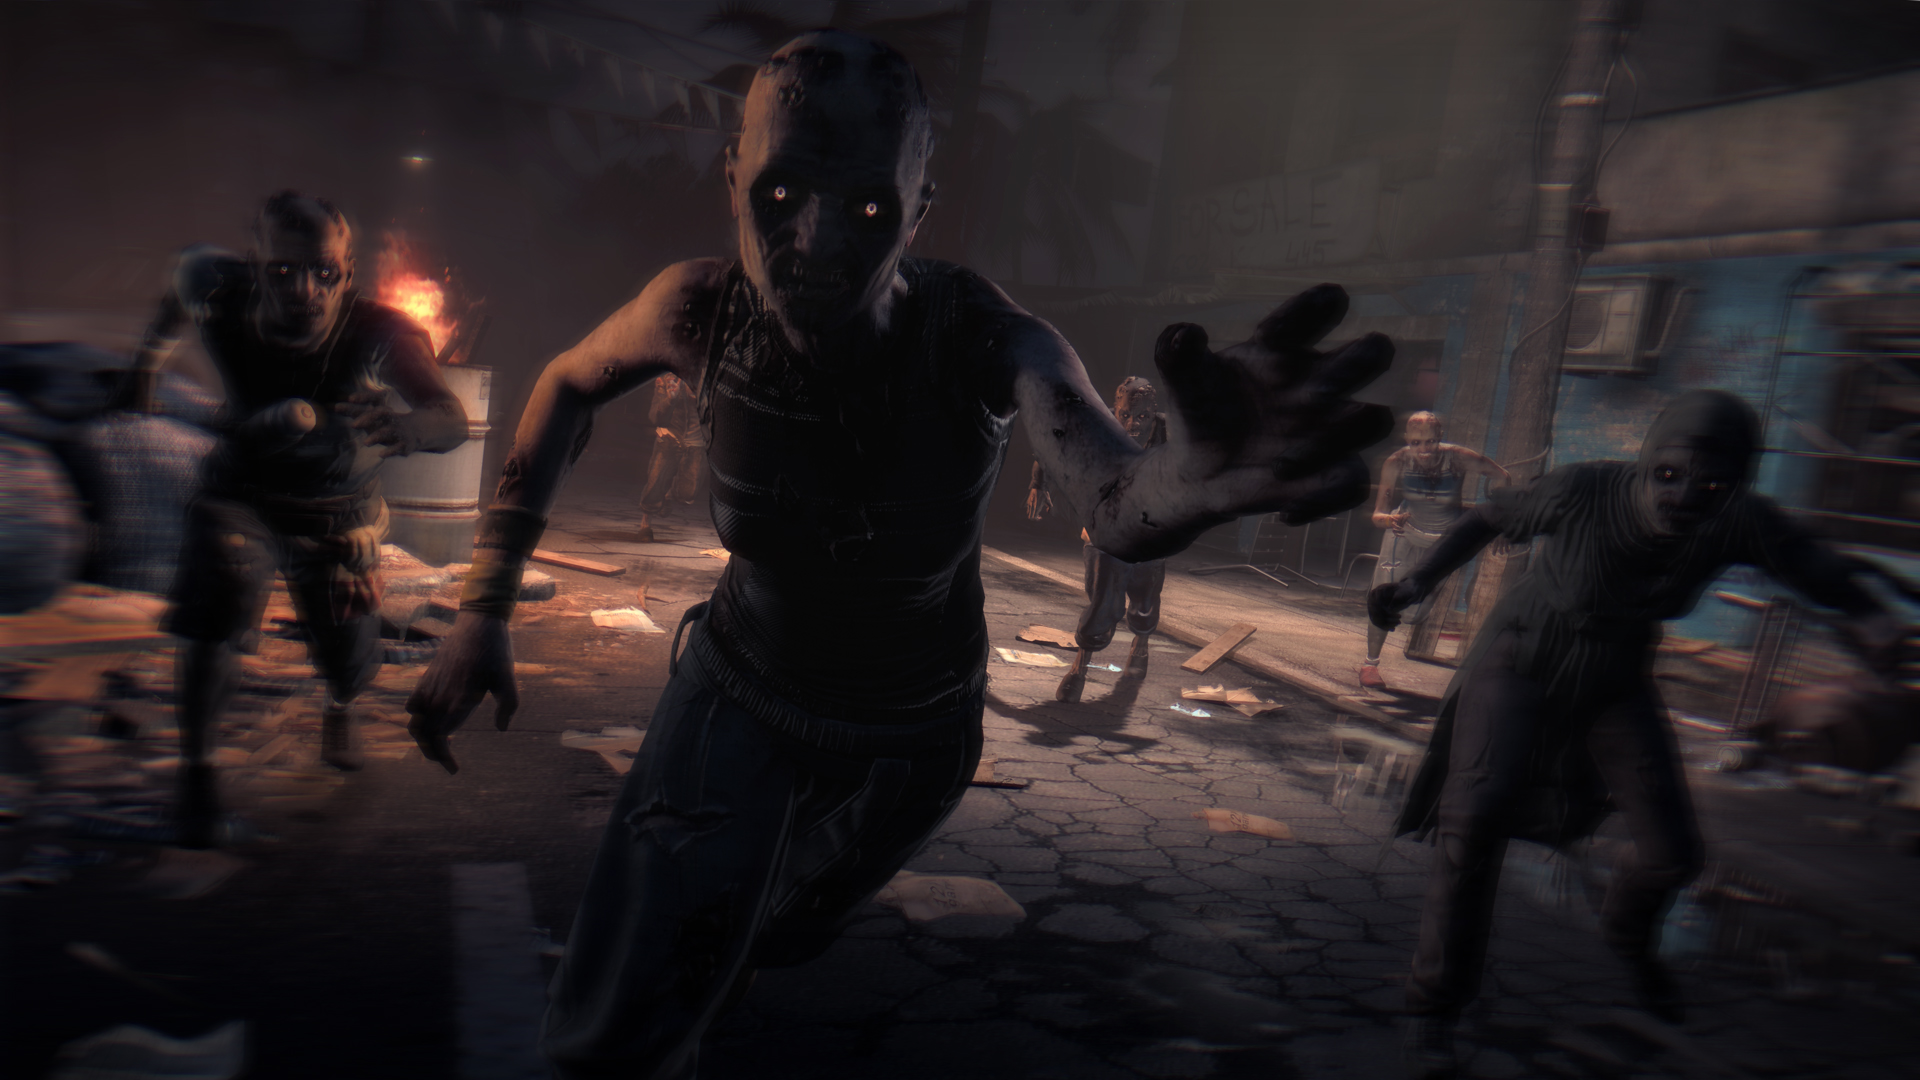 Dying Light developer Techland has revealed a few more technical 1920x1080